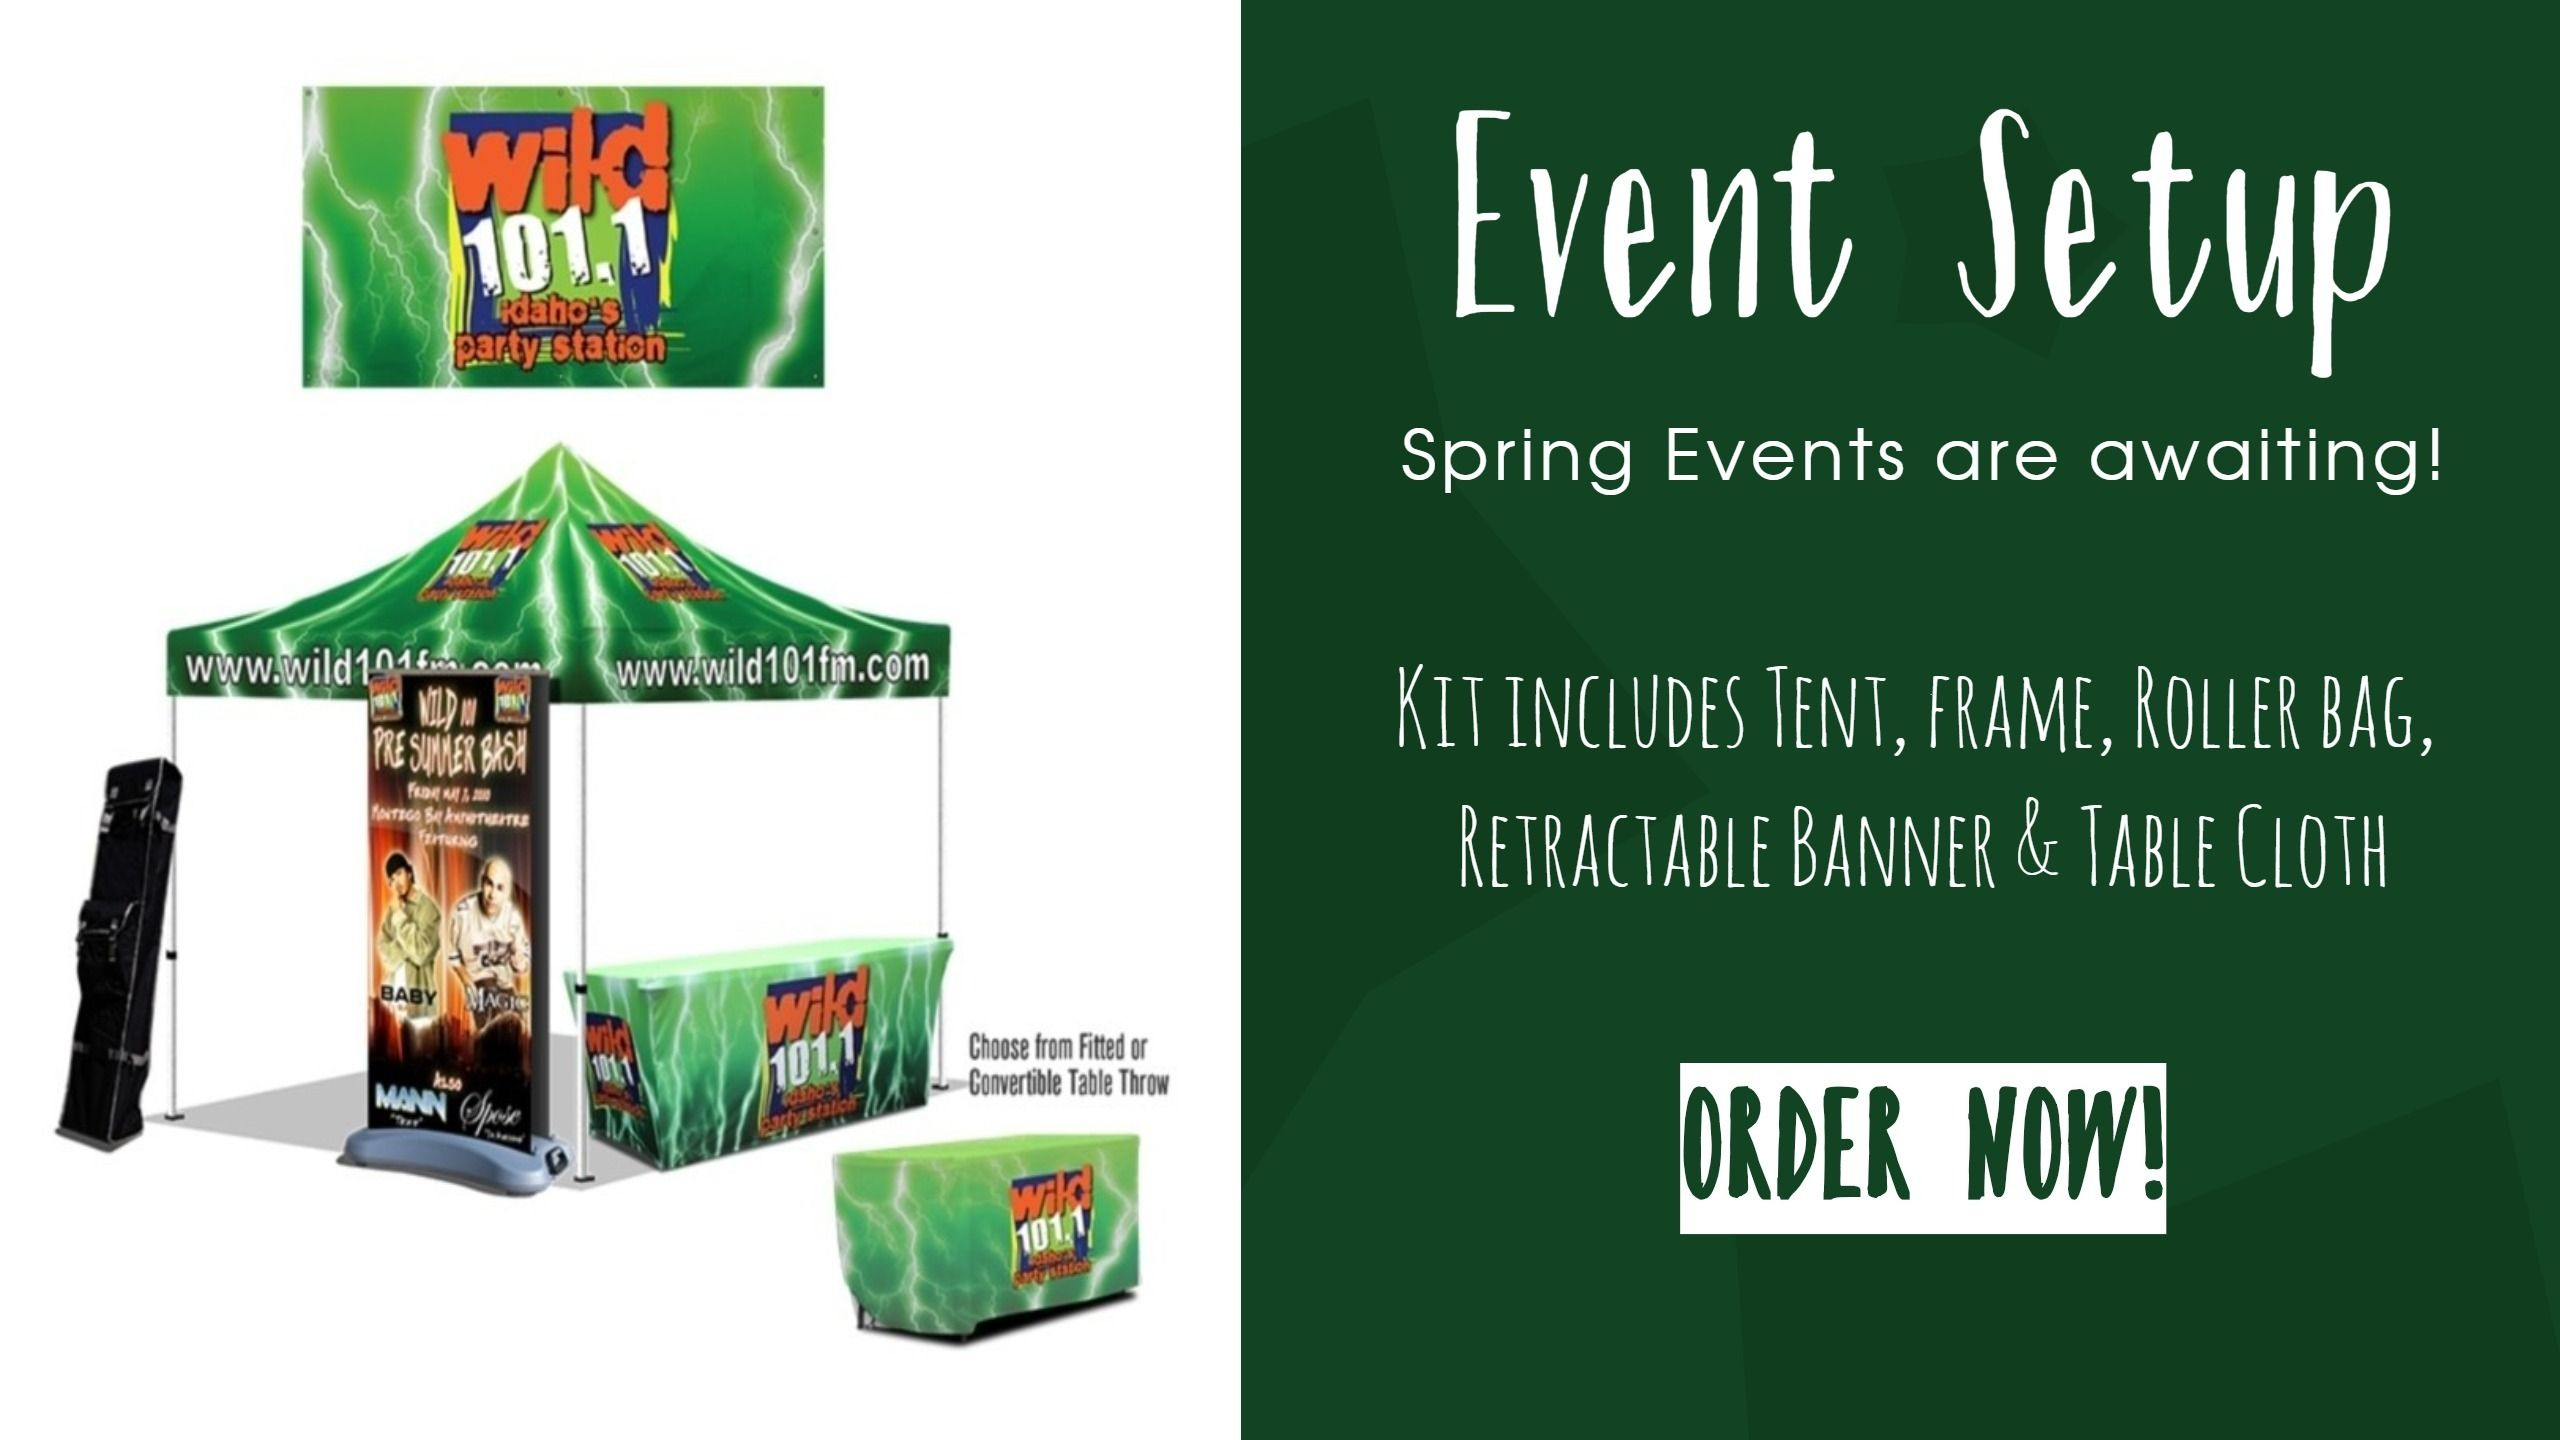 Event Setup Kit Features 1 10x10 Tent Full Digital Frame 1 Tent Roller Bag 1 Double S Retractable Banner Stand Trade Show Display Custom Digital Prints